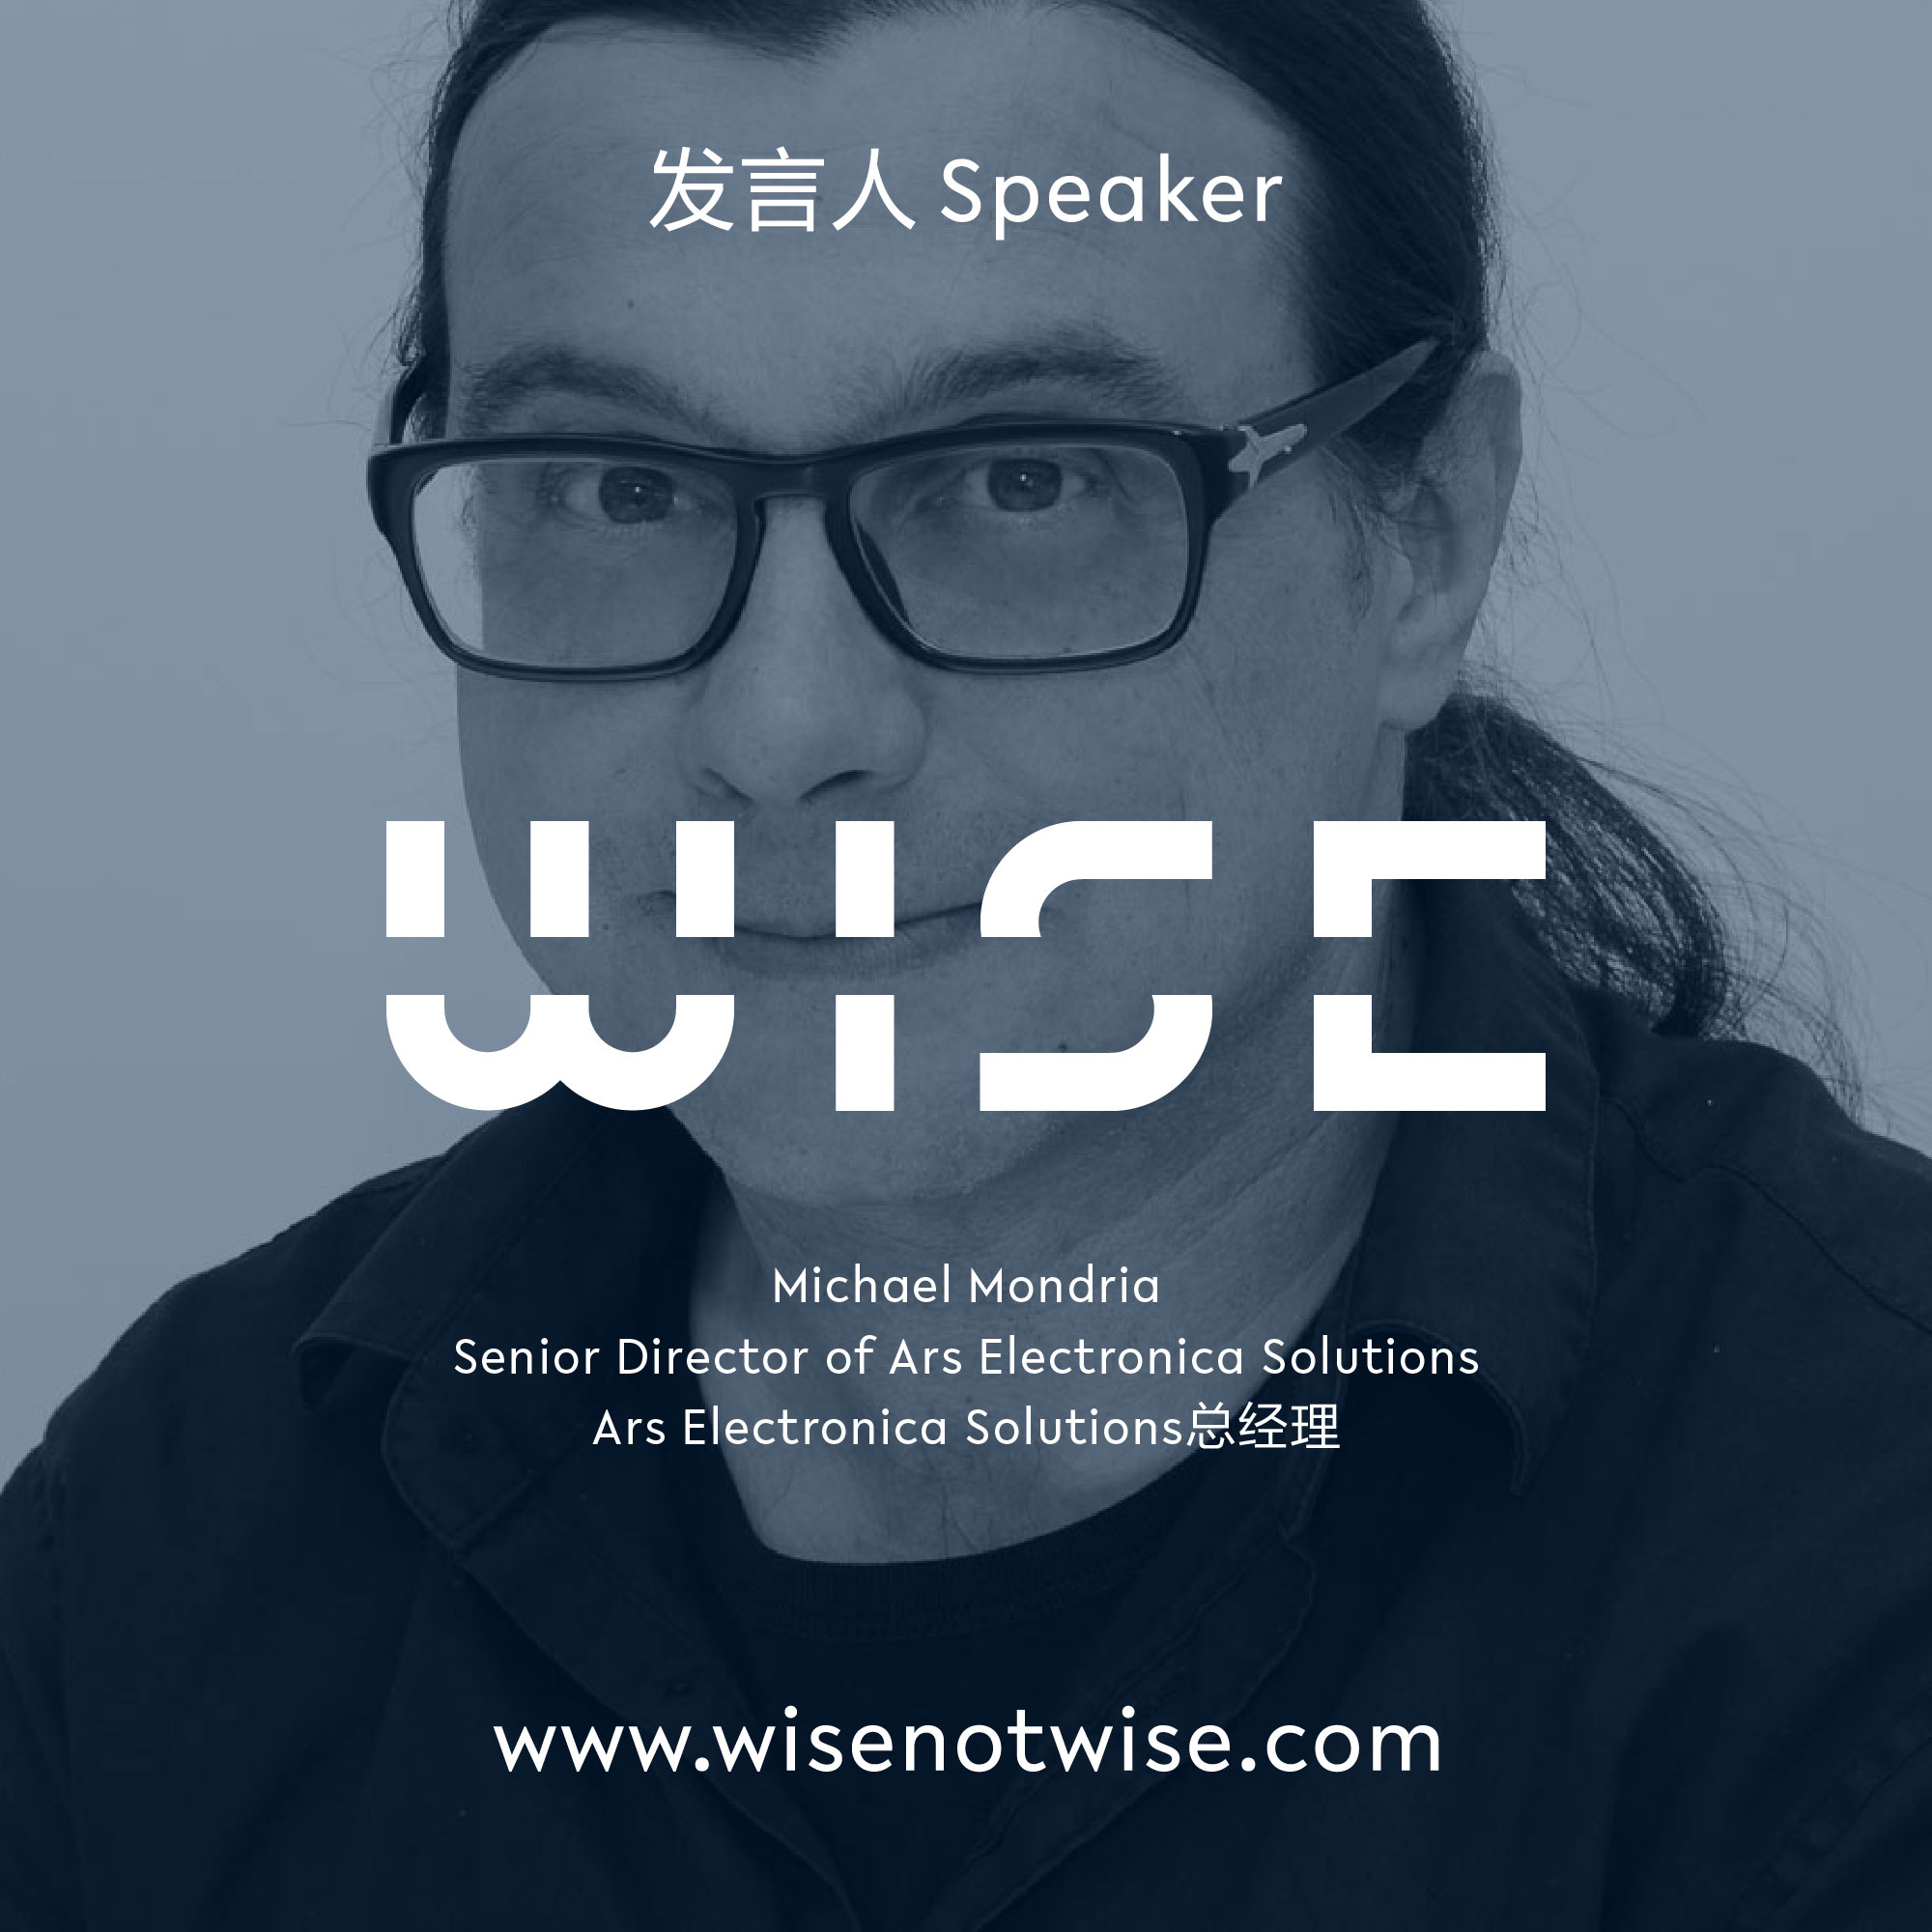 Michael Mondria (China Senior Director of Ars Electronica Solutions)